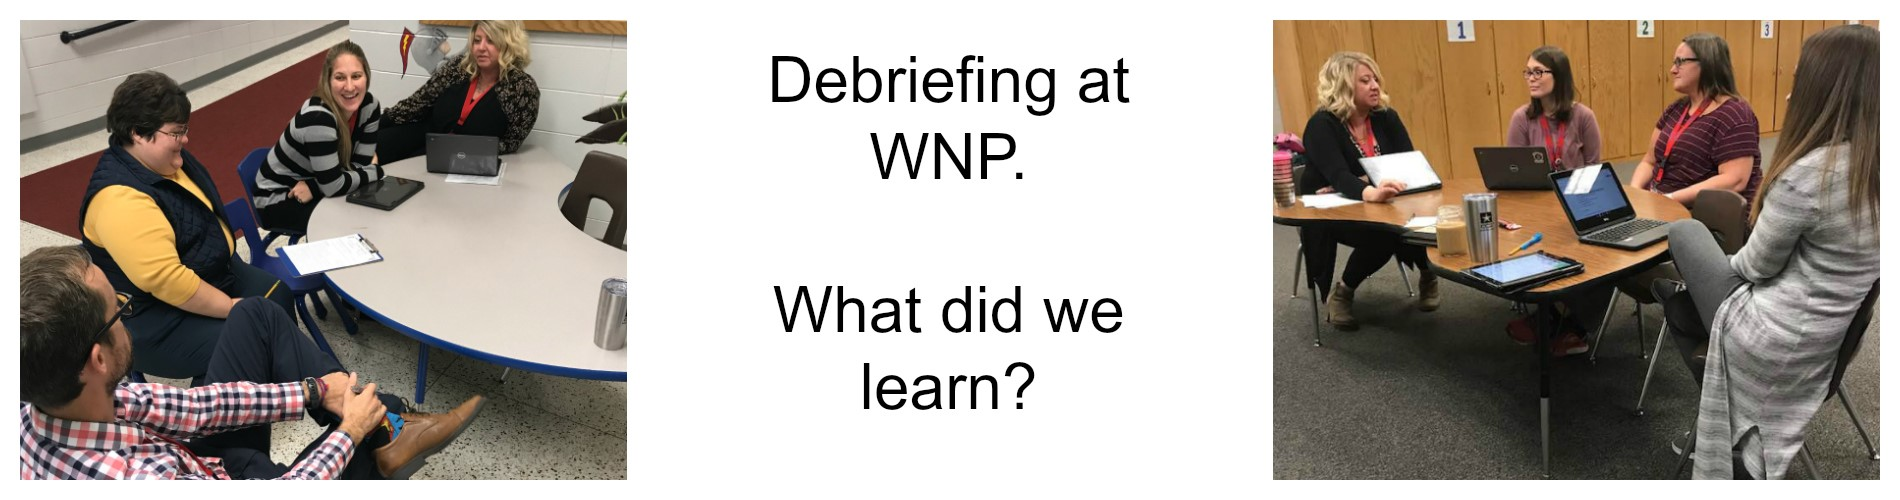 Debriefing at WNP.